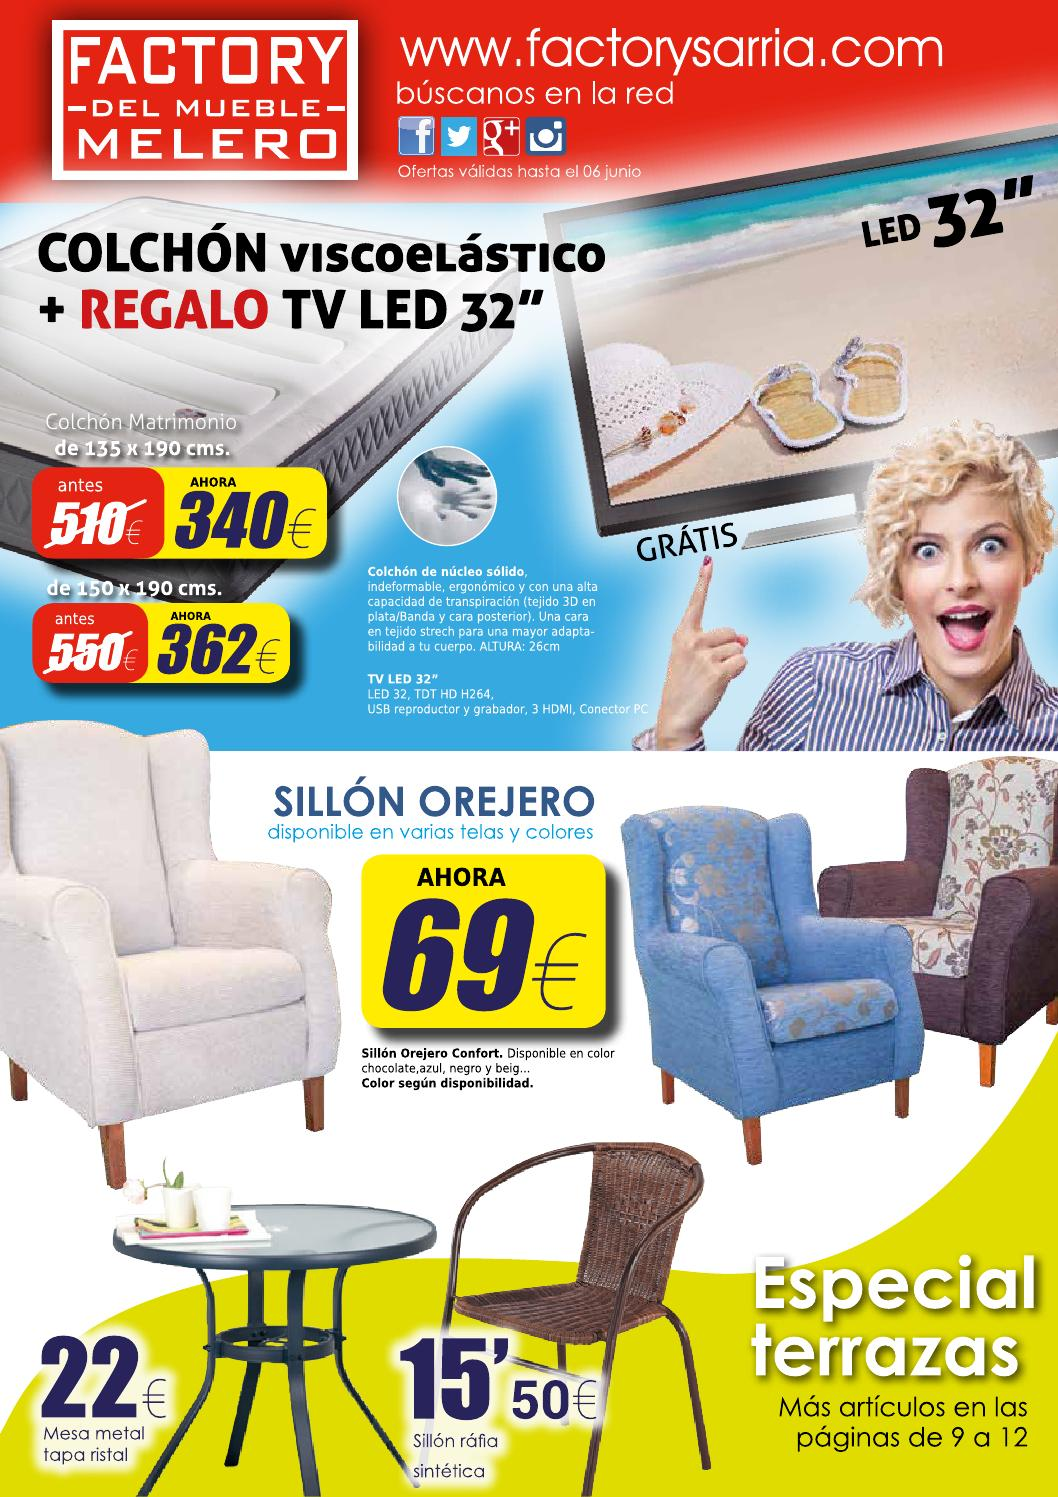 Ofertas factory del mueble melero abril 2015 by factory for Factory del mueble melero